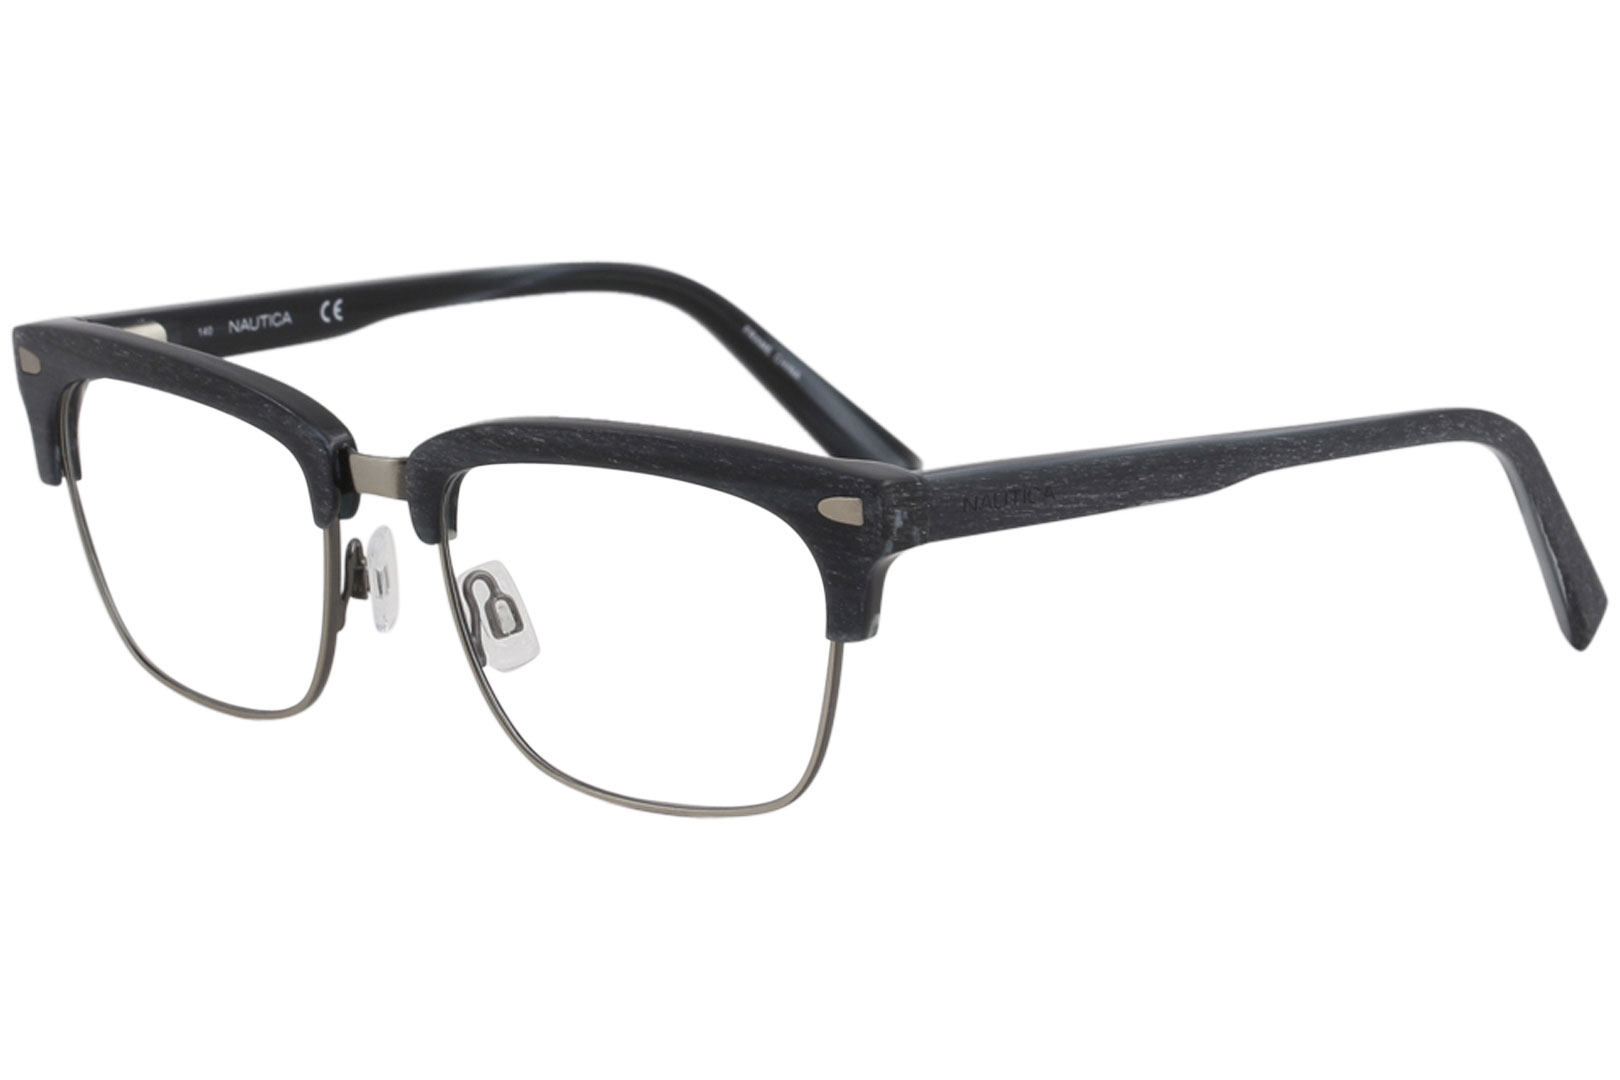 68285af68b Nautica Men s Eyeglasses N8129 N 8129 030 Gunmetal Full Rim Optical ...